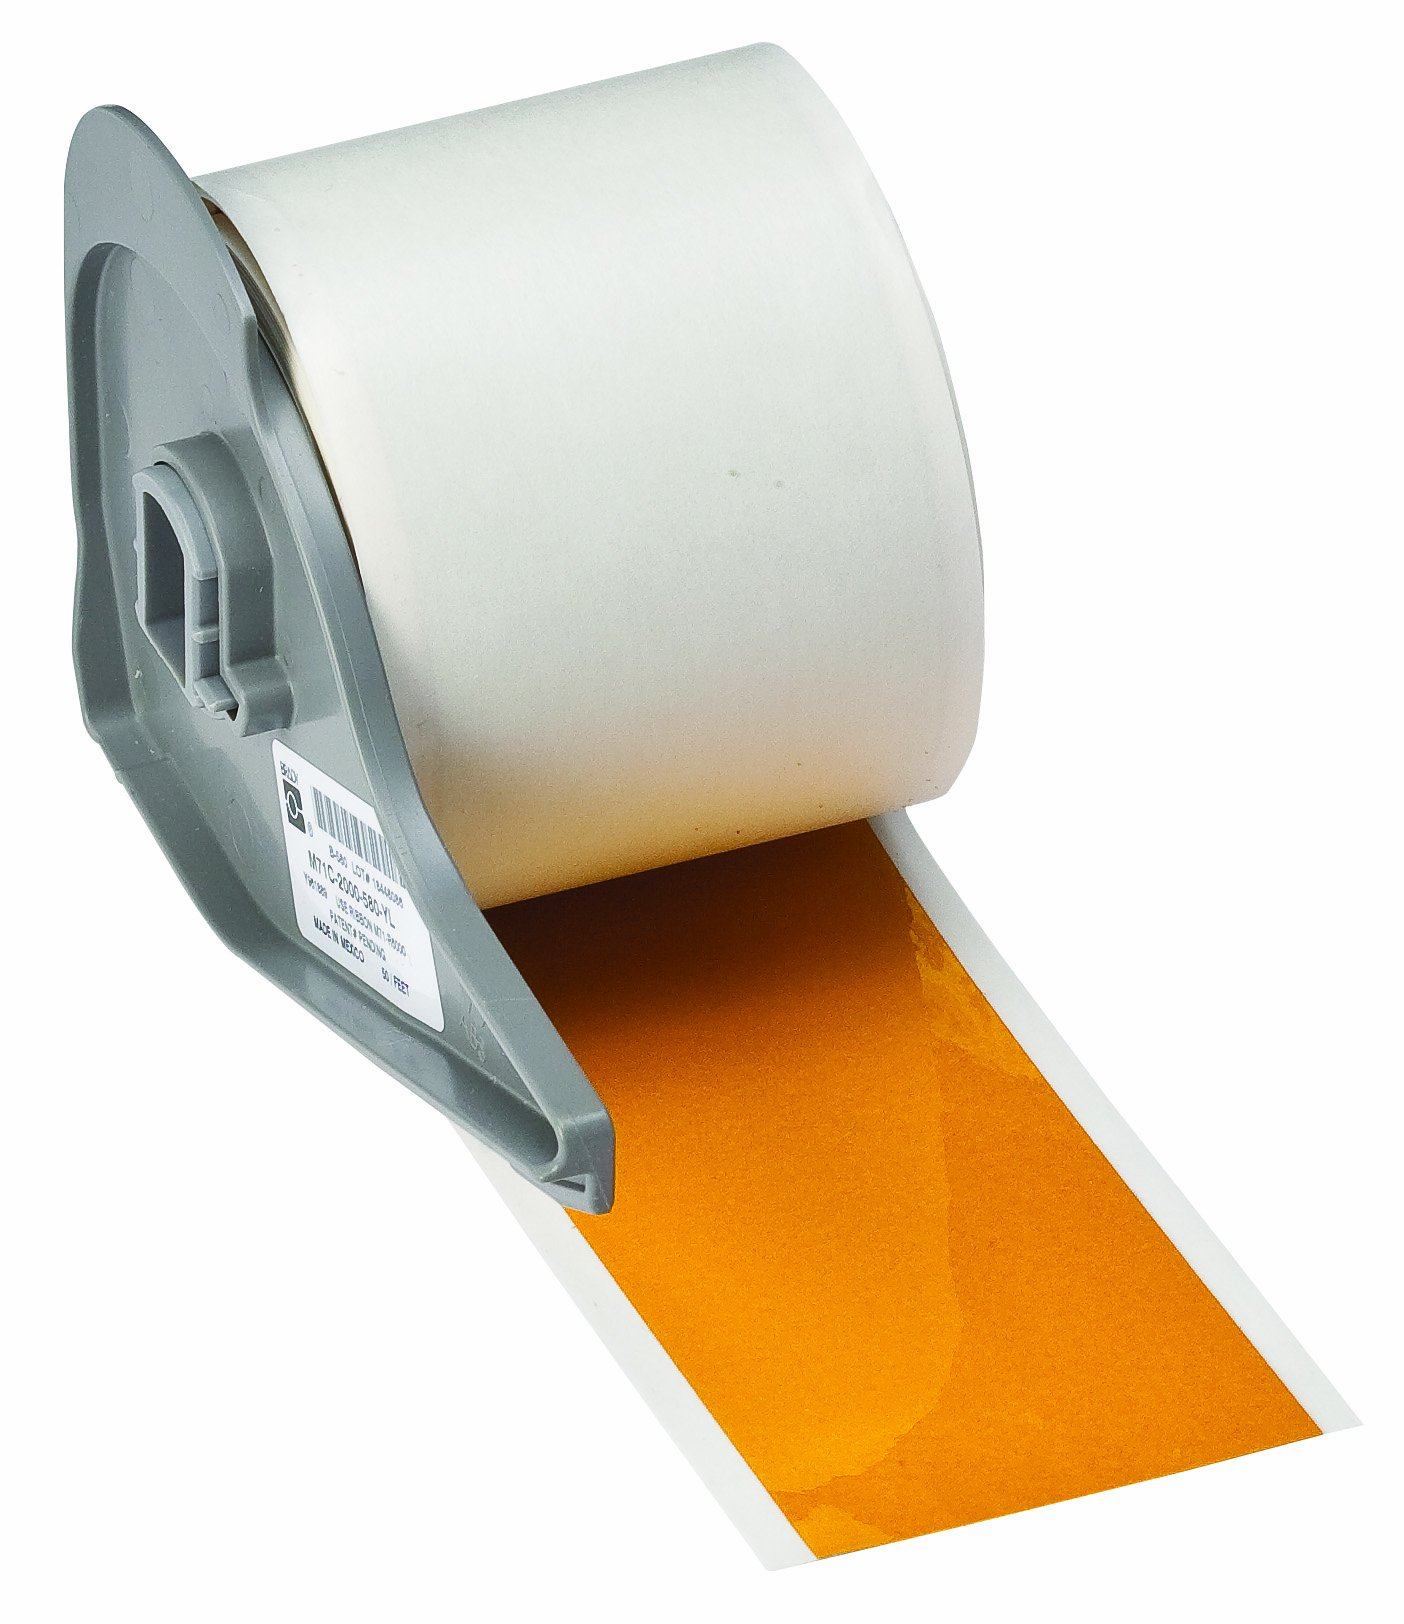 Brady BM71C-2000-584-YL Reflective Tape BMP71 Labels , Yellow (1 Roll, 1 Roll per Package)